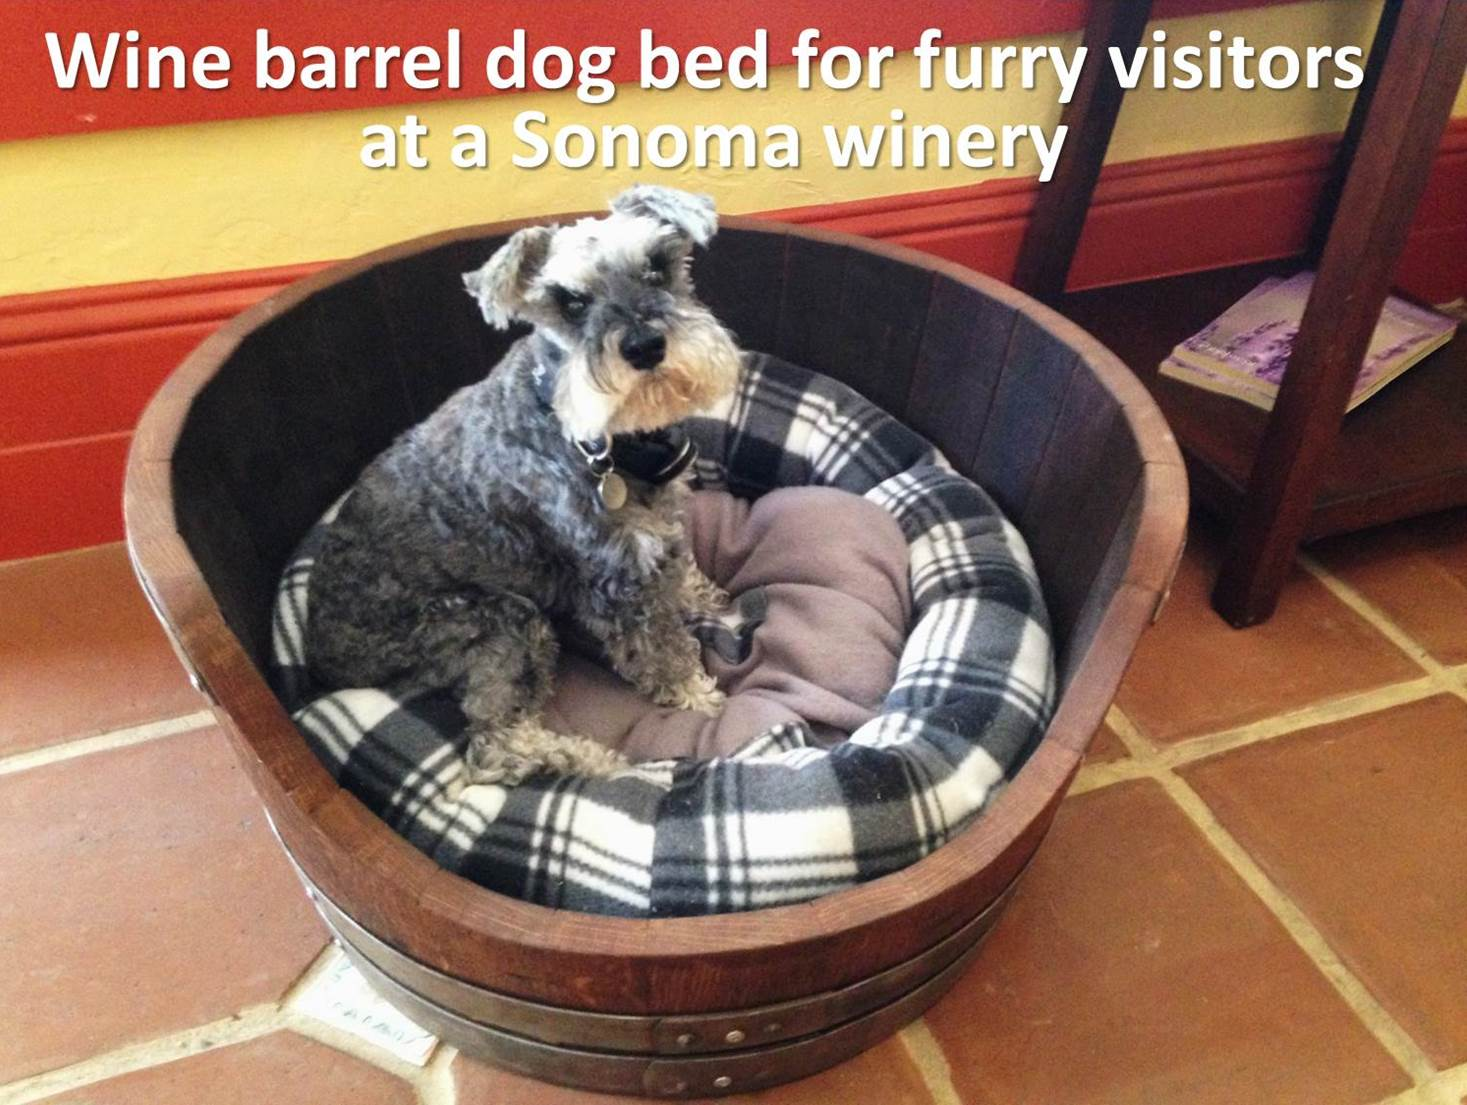 wine barrel dog bed - dog friendly travel